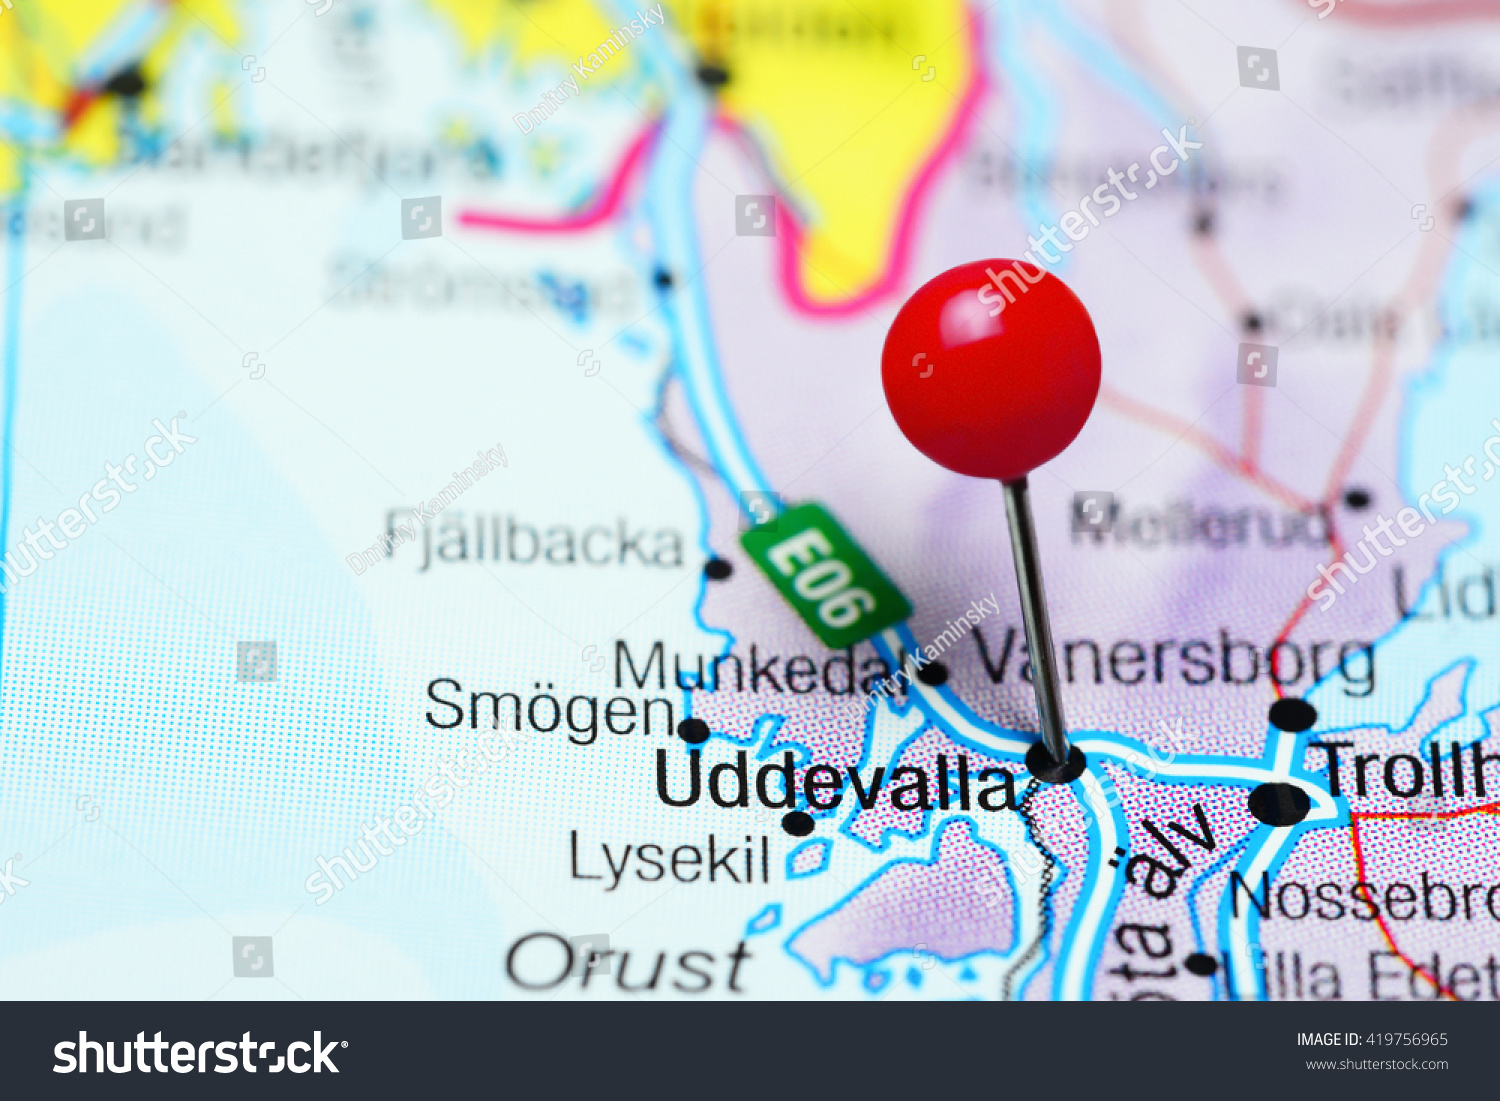 Uddevalla Pinned On A Map Of Sweden Stock Photo - Sweden map uddevalla